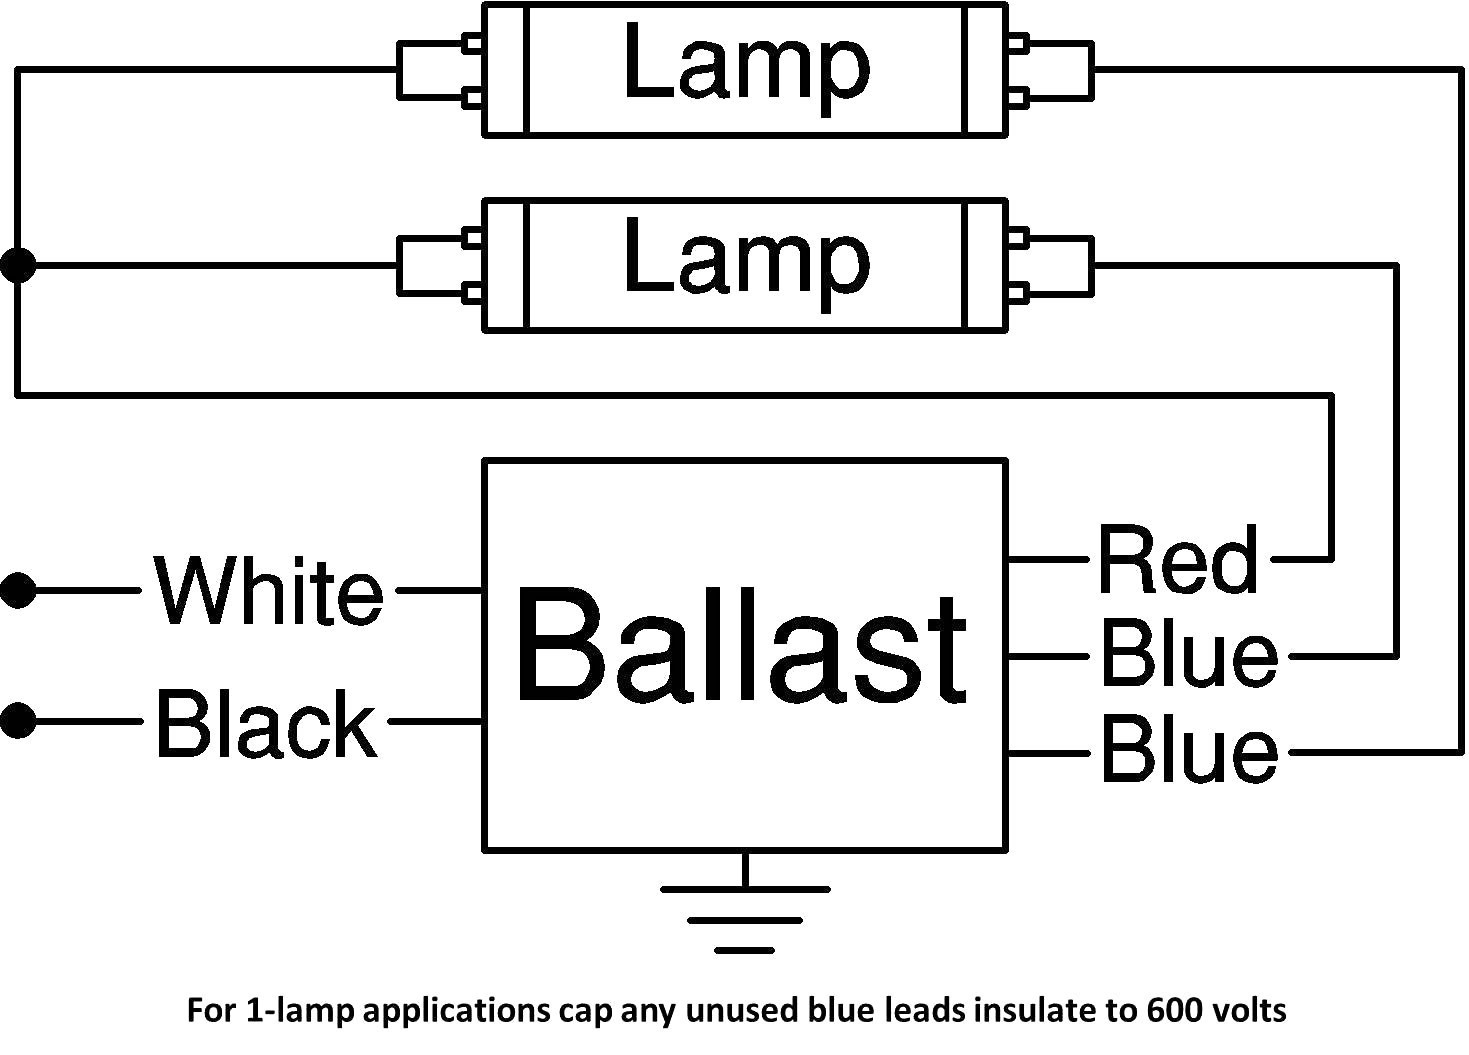 hight resolution of icn 4s54 90c 2ls g wiring diagram sample 3 wire wiring diagram for ballast 4 lamp t5ho wiring diagram centium ballasts